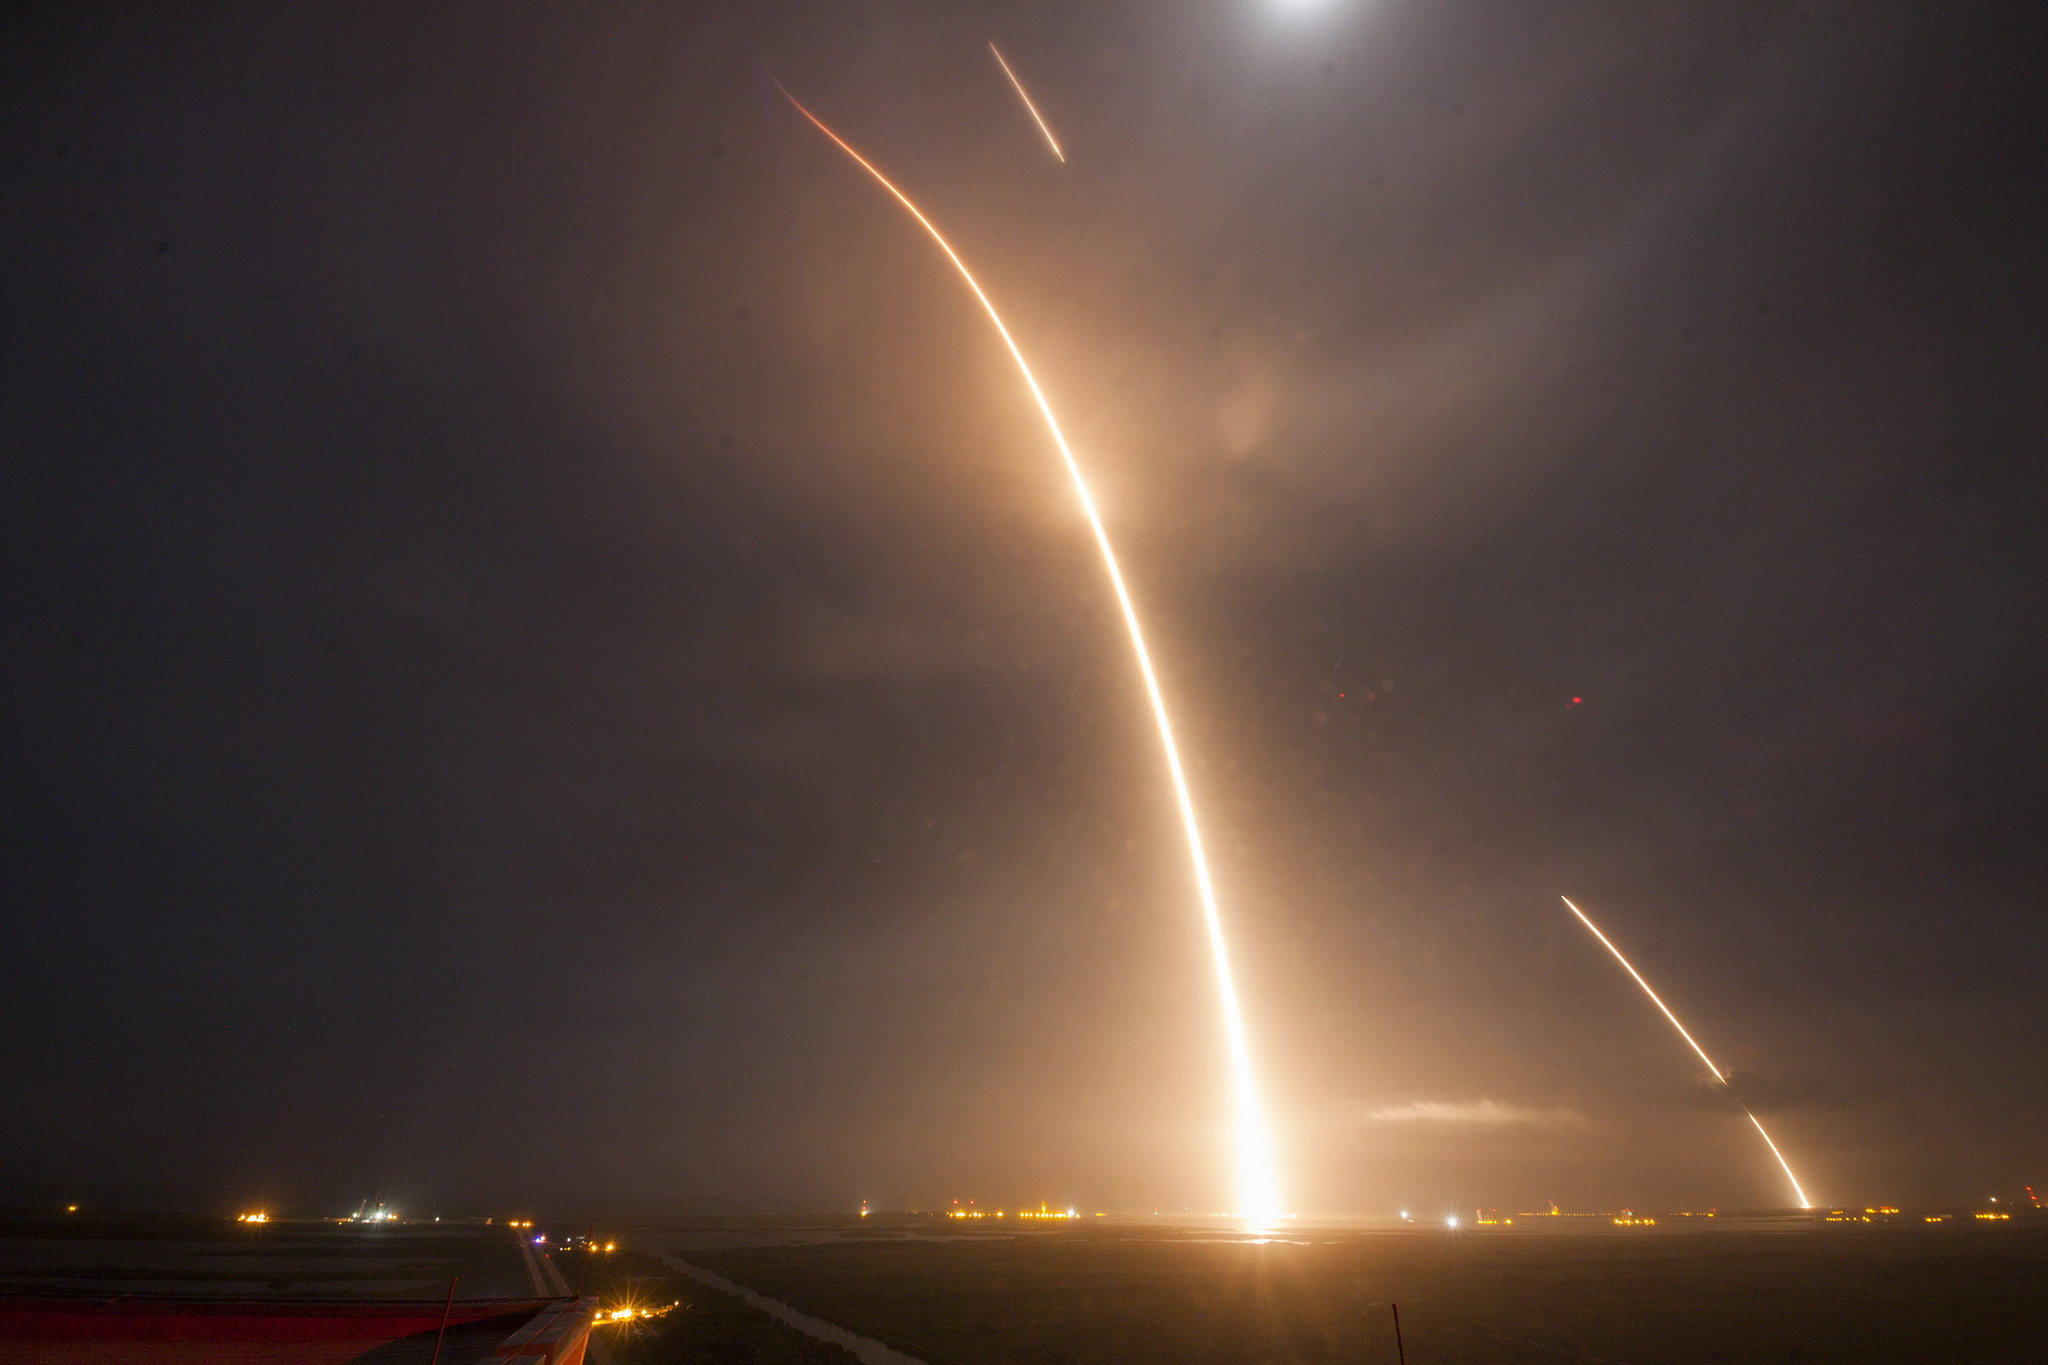 SpaceX's Epic Falcon 9 Rocket Landing in Pictures